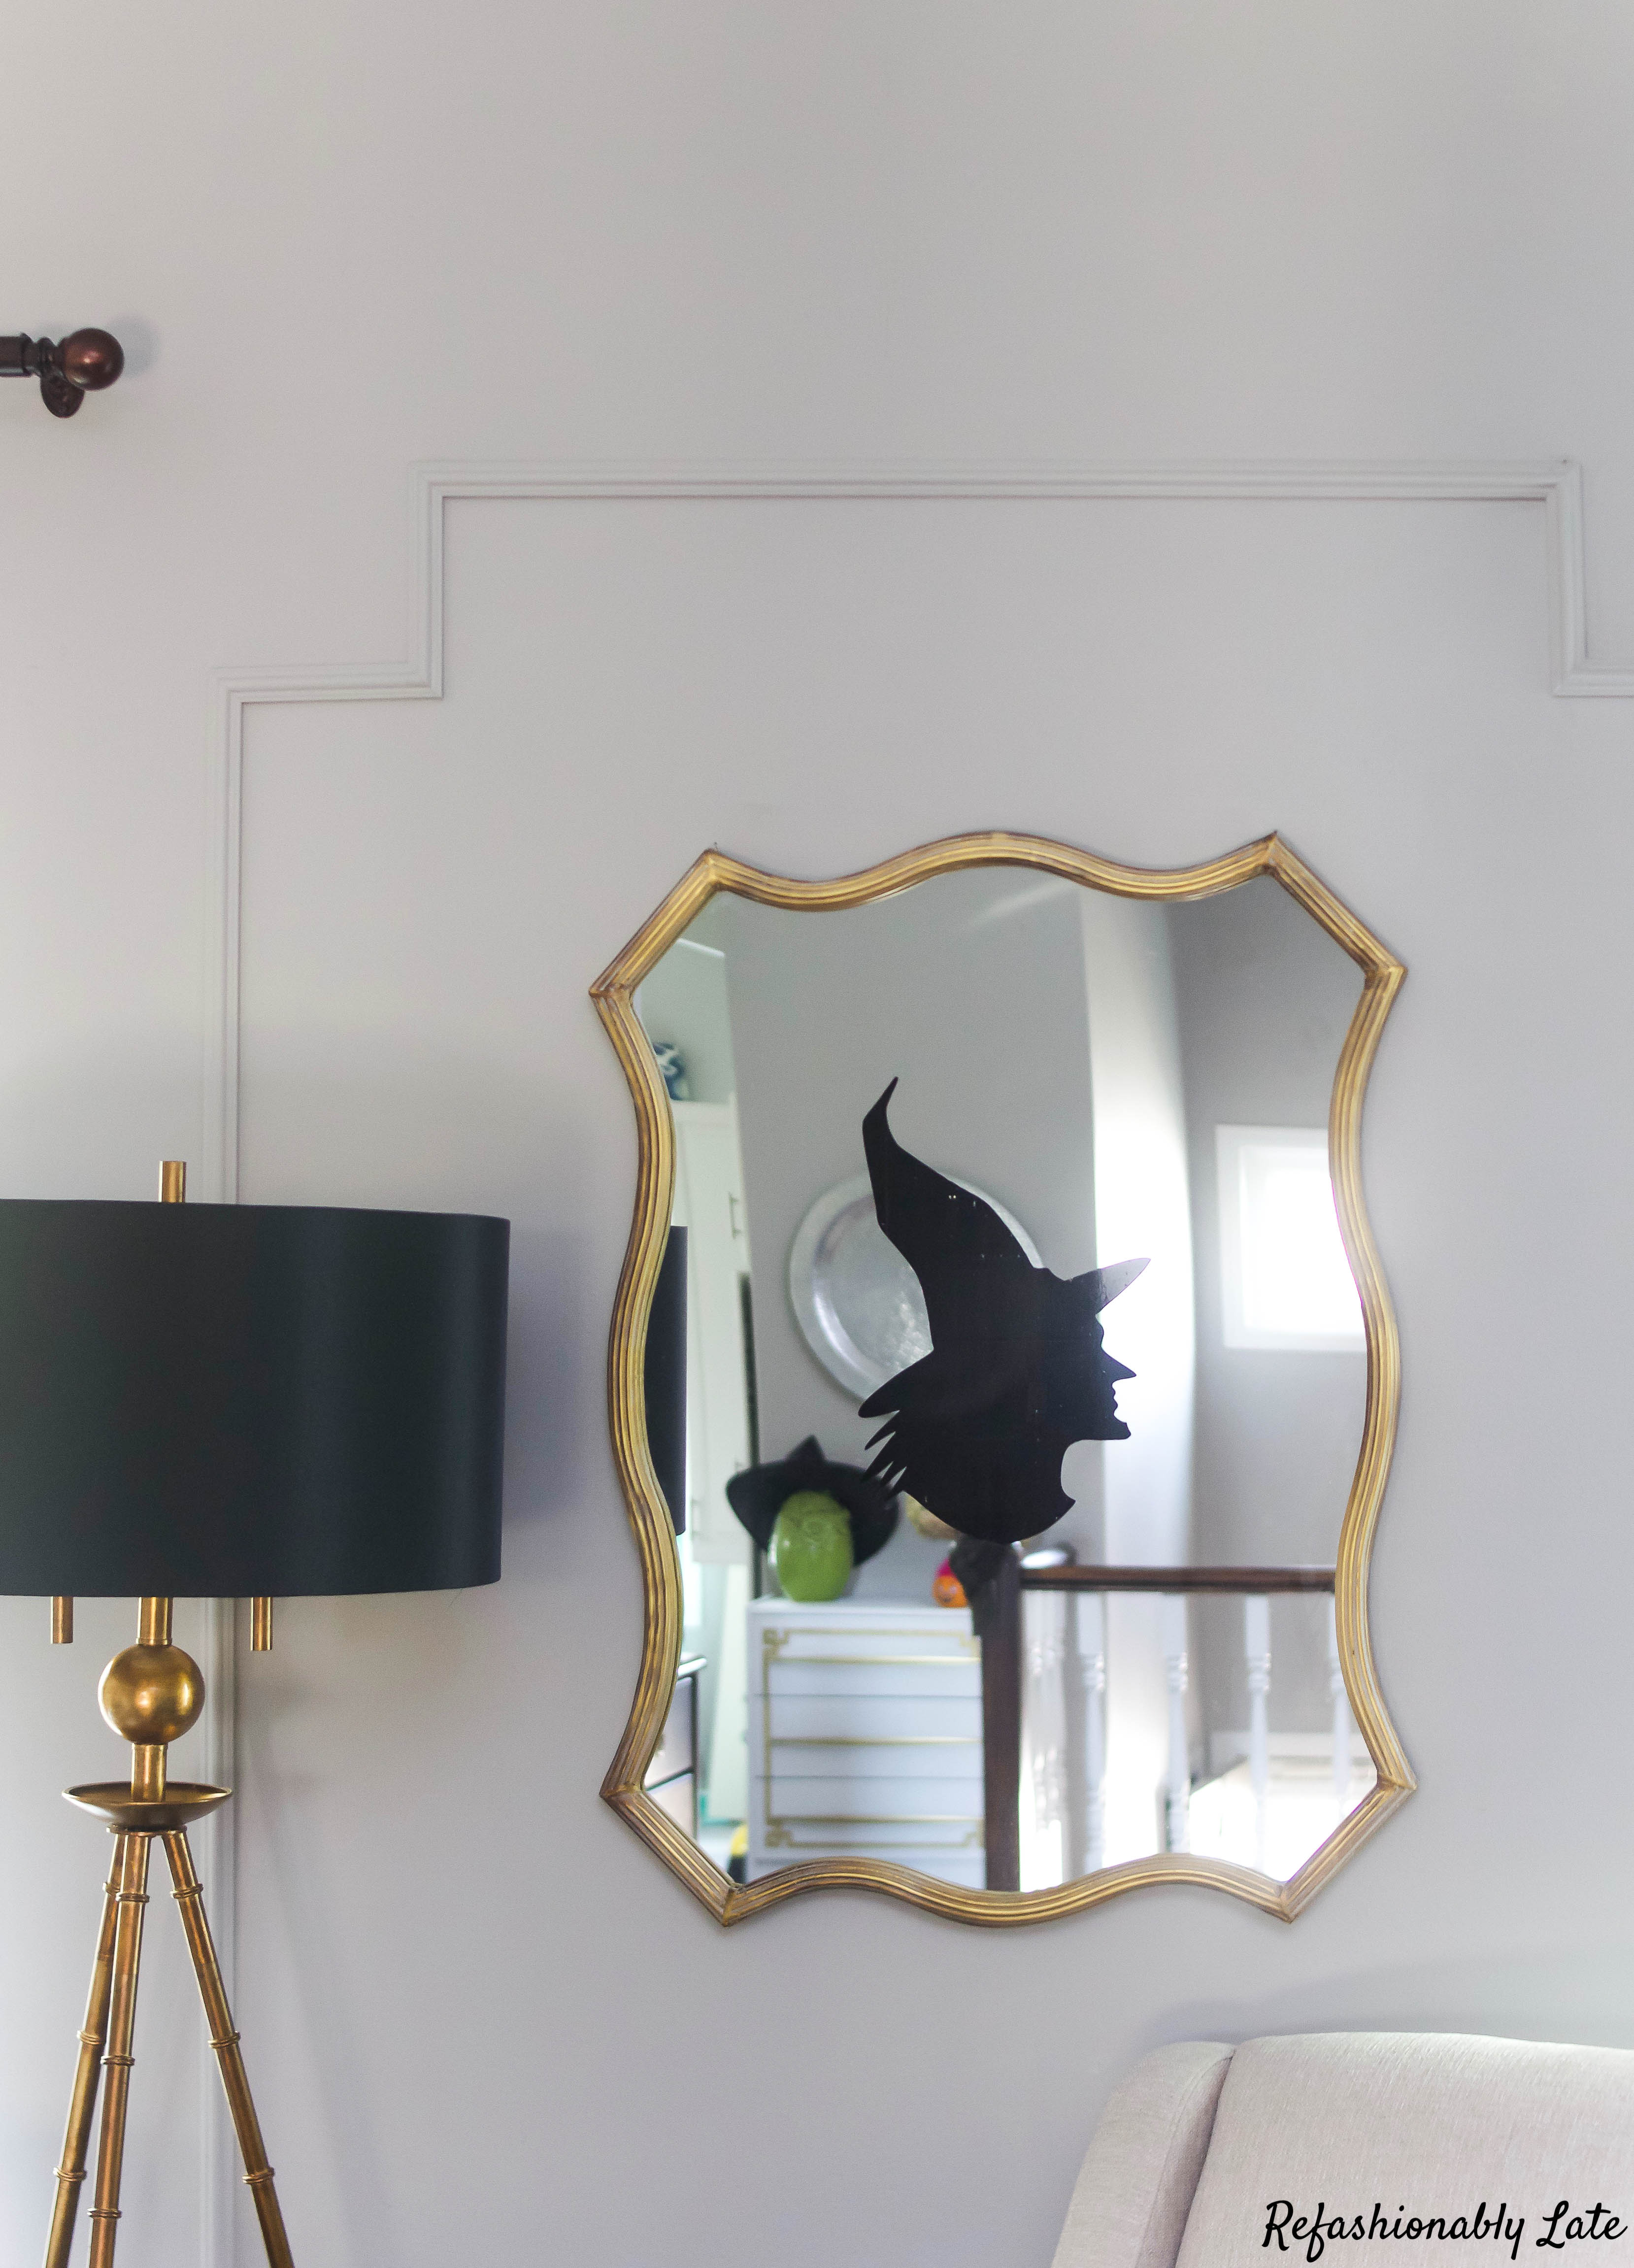 Gold mirror with a witch decal in the center on gray walls with a gold bamboo floor light with black shade